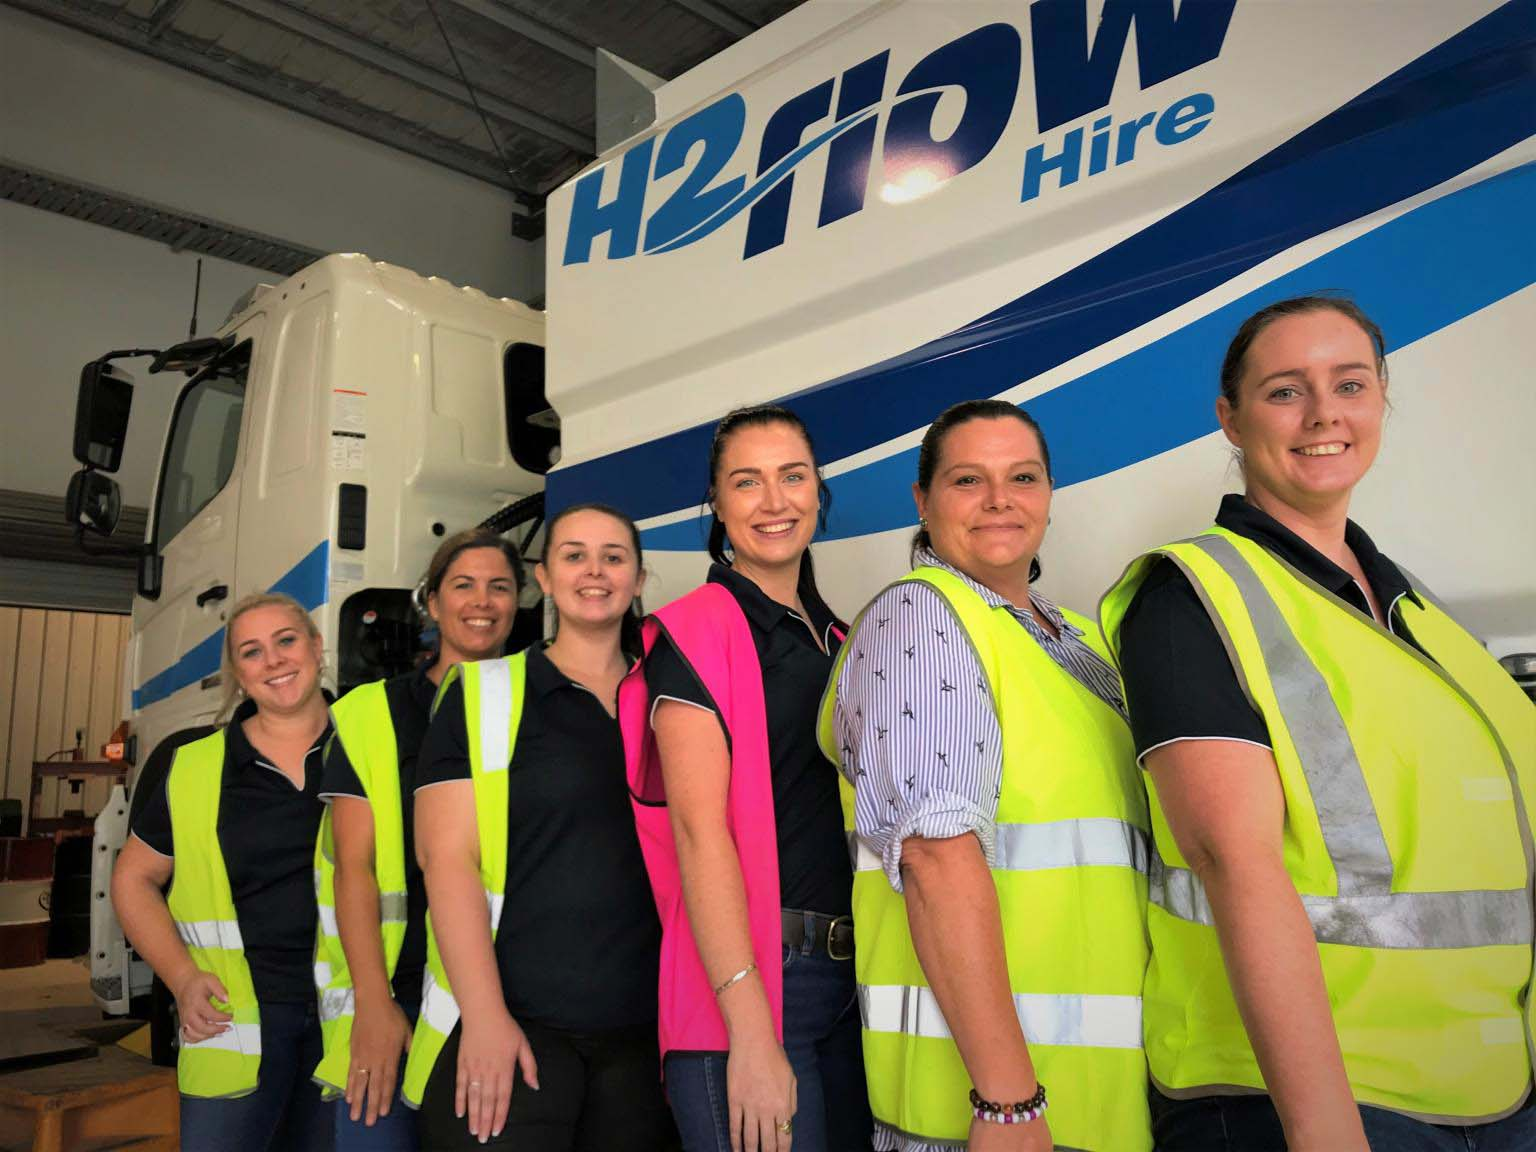 Some of the wonderful women working in customer service, accounts, workshop and driving teams at H2flow Hire.